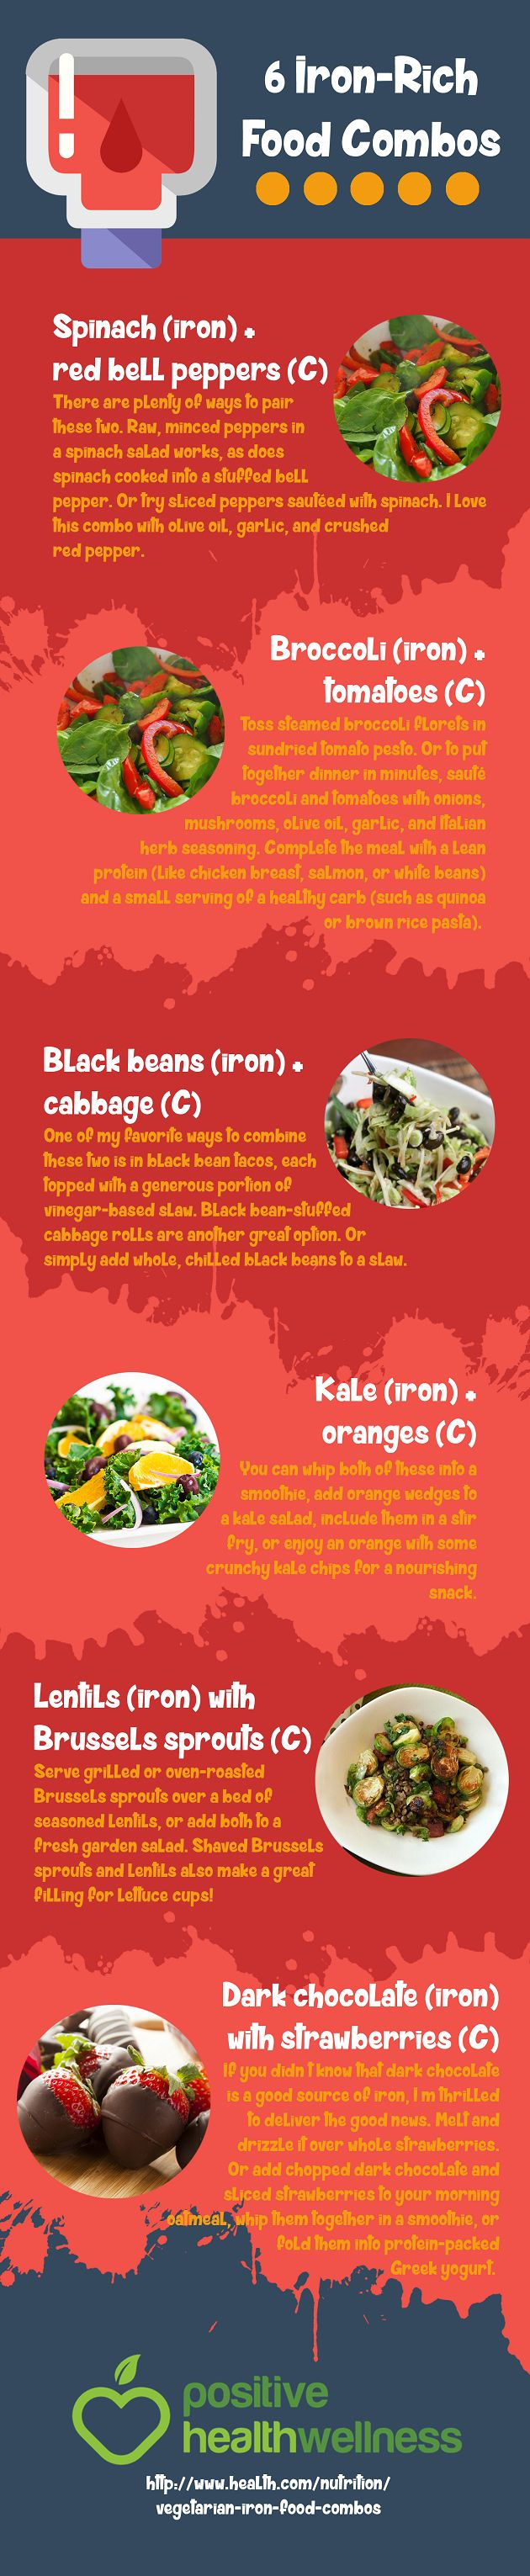 6 Iron-Rich Food Combos – Positive Health Wellness Infographic